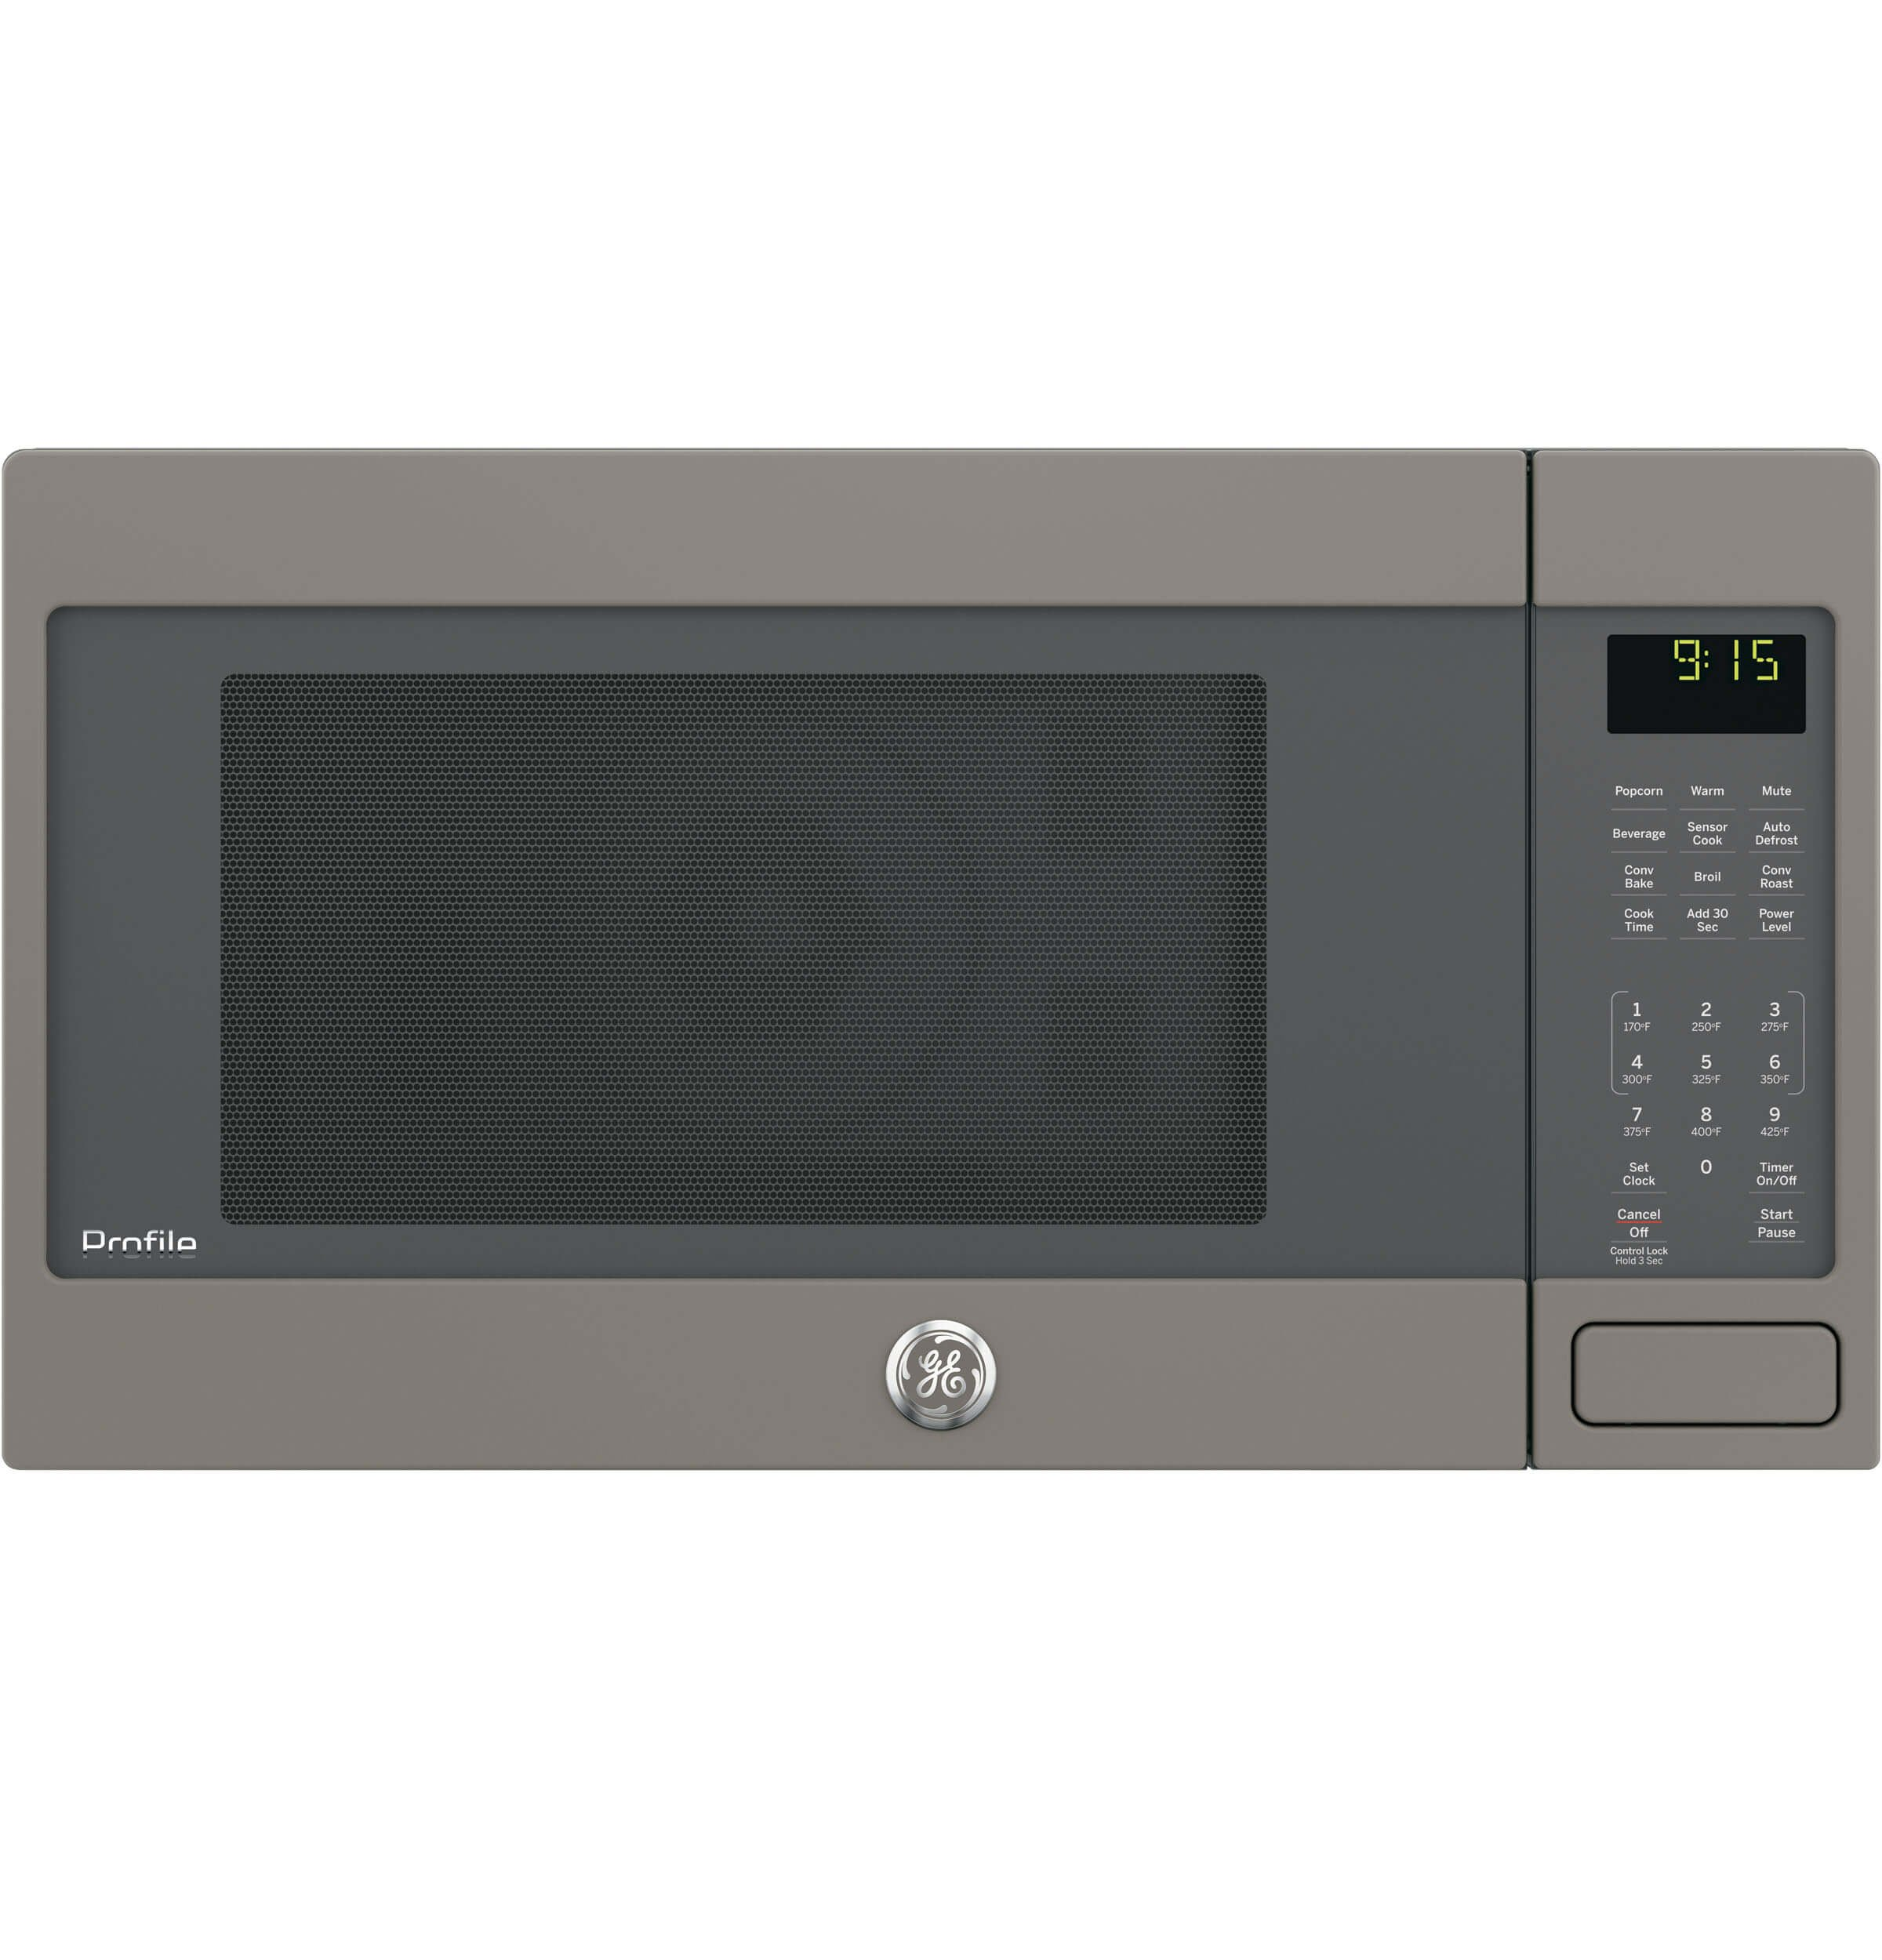 GE PEB9159EJES Microwave Oven by GE